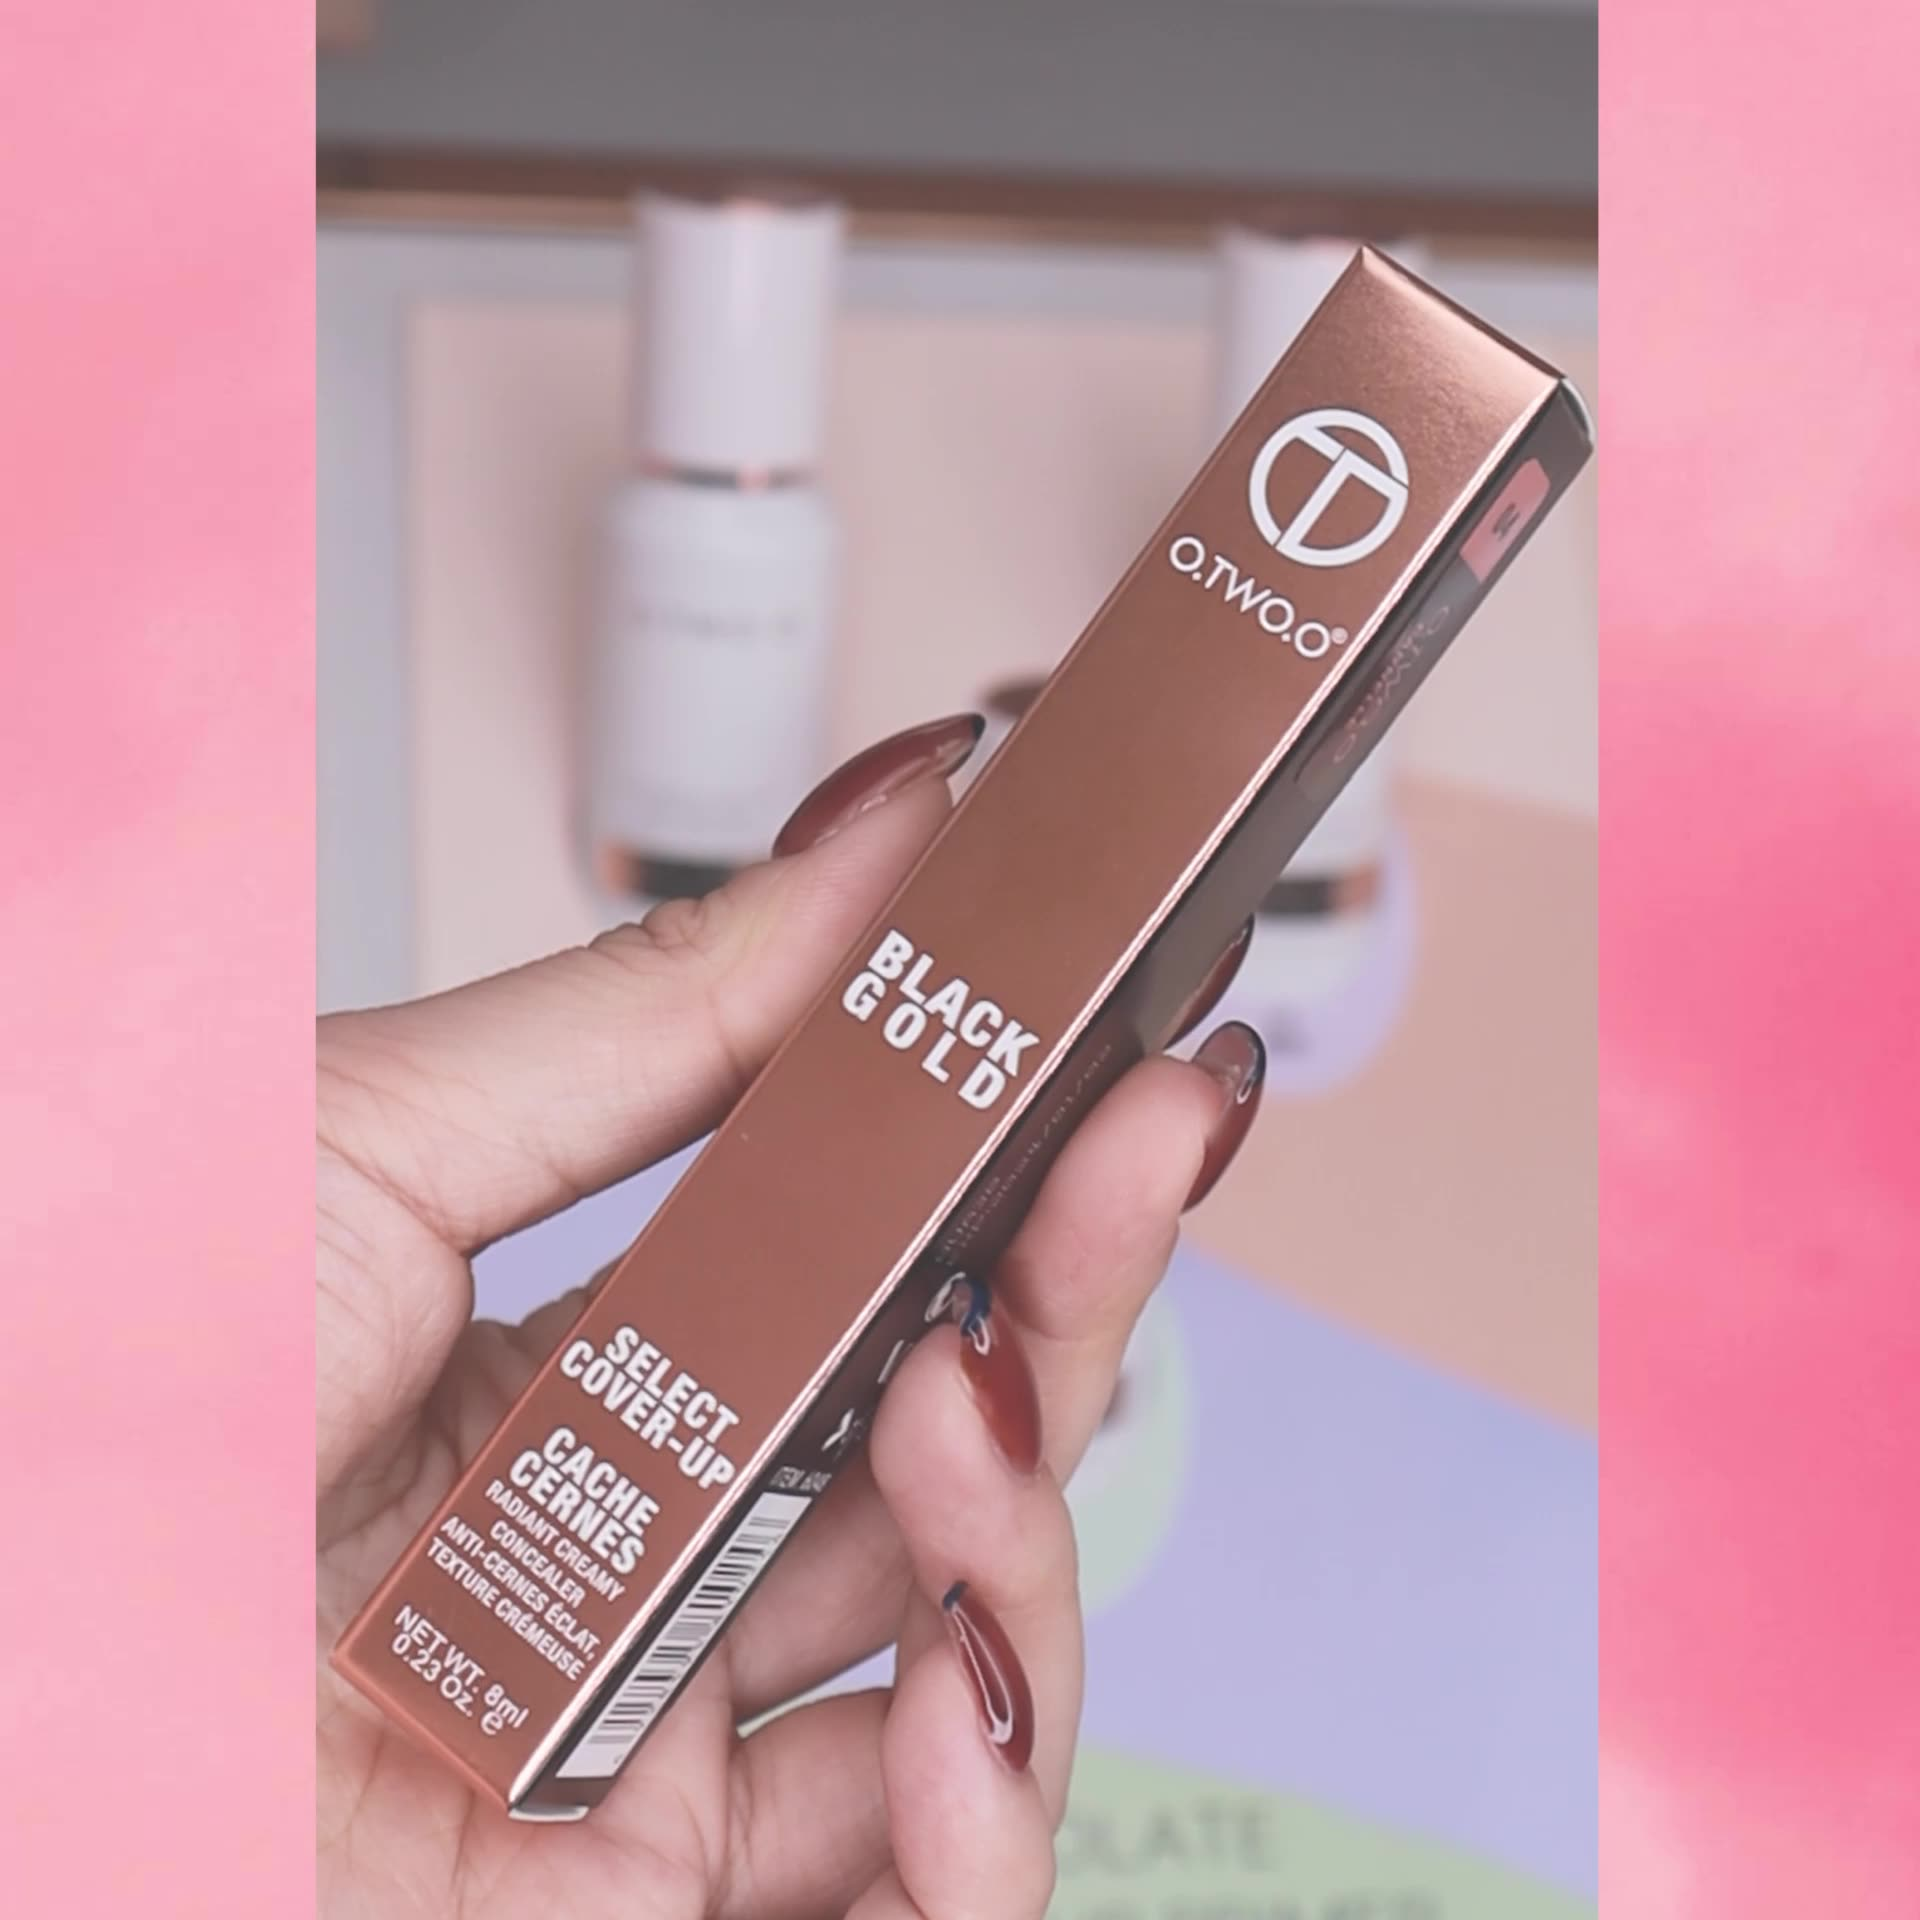 O.TWO.O cosmetics makeup perfect cover face concealer makeup liquid concealer